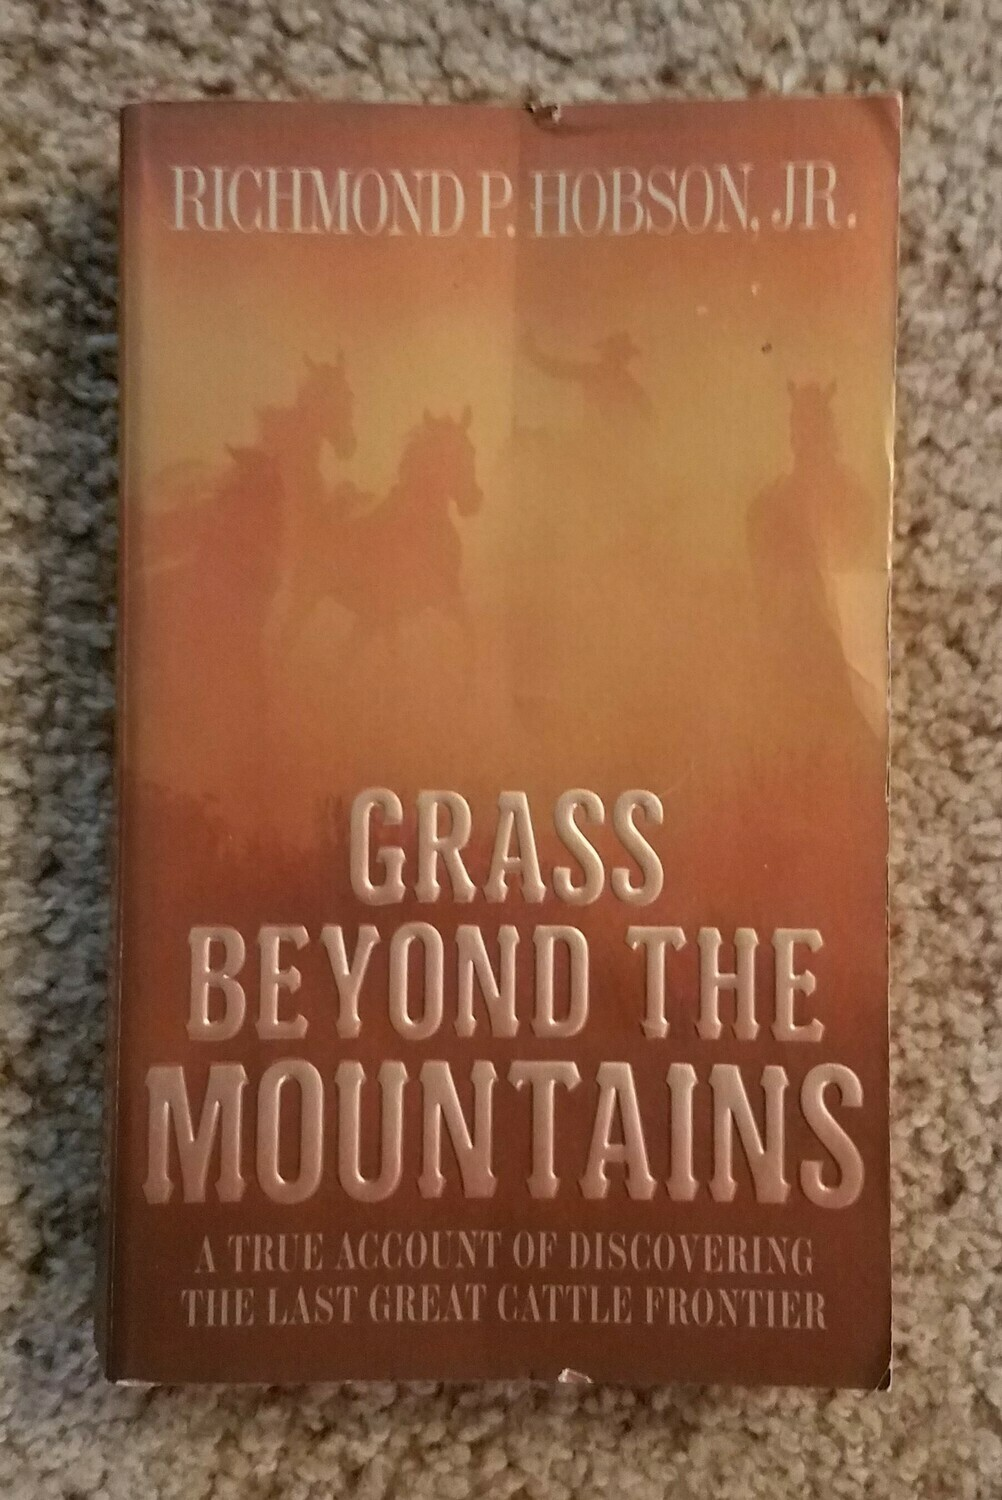 Grass Beyond the Mountains by Richamond P. Hobson Jr.